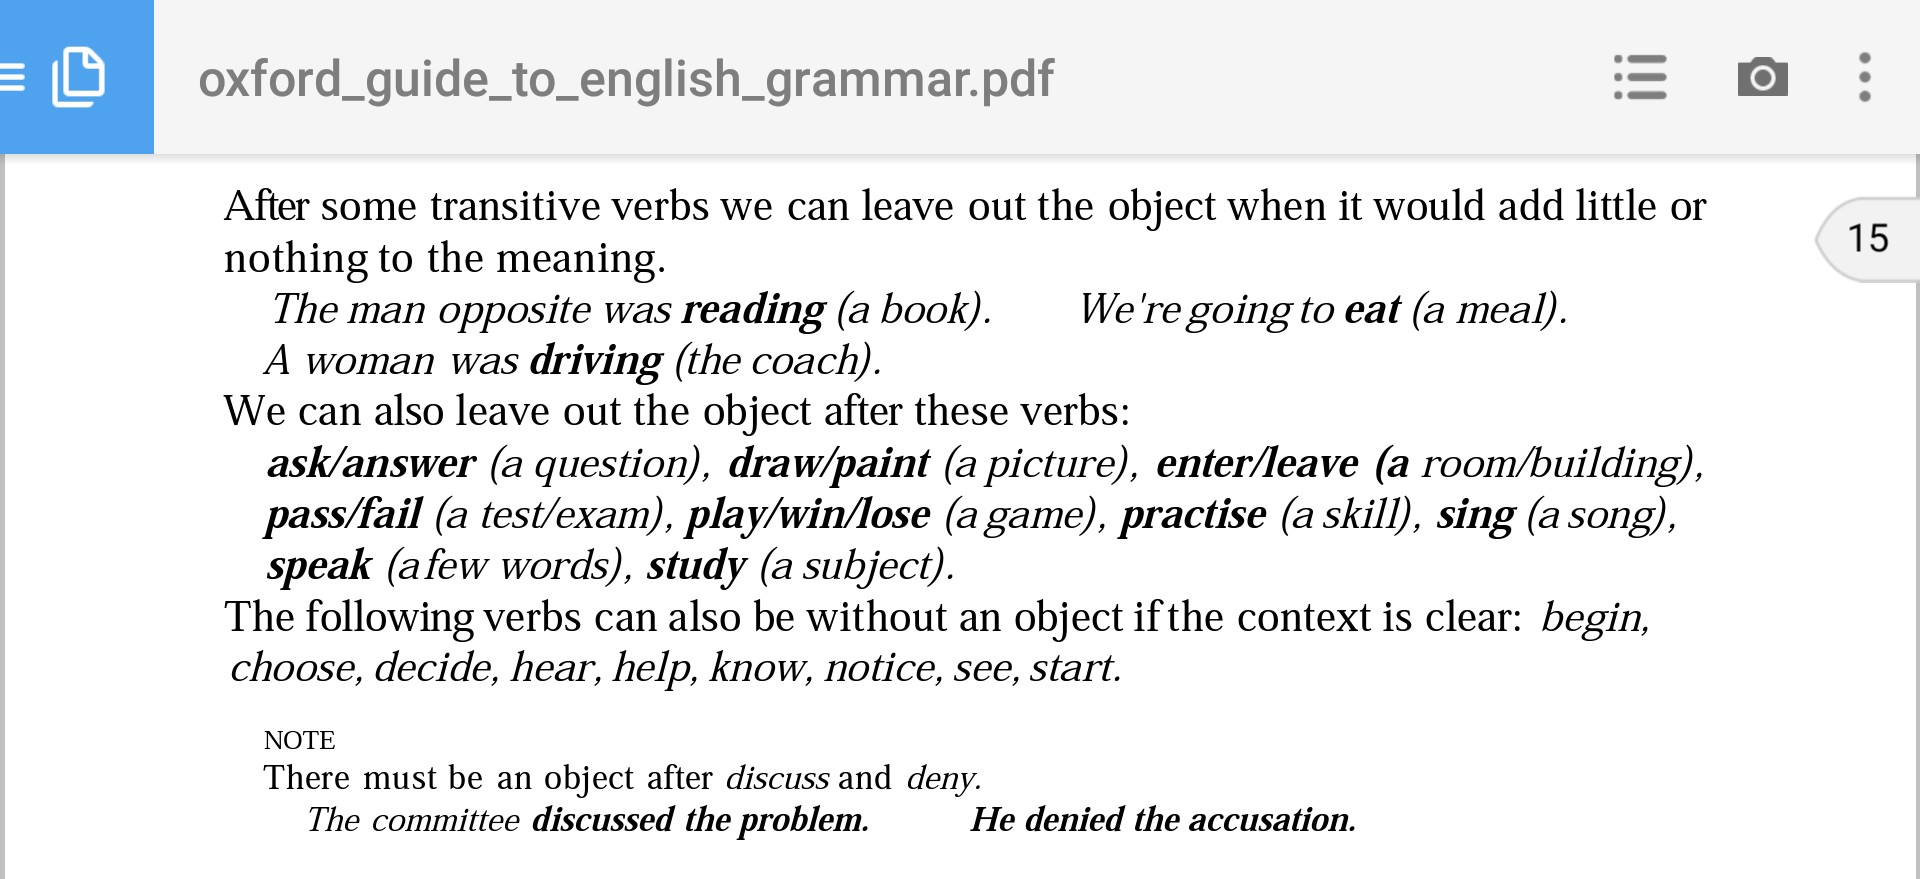 Transitive Verbs Versus Intransitive Verbs